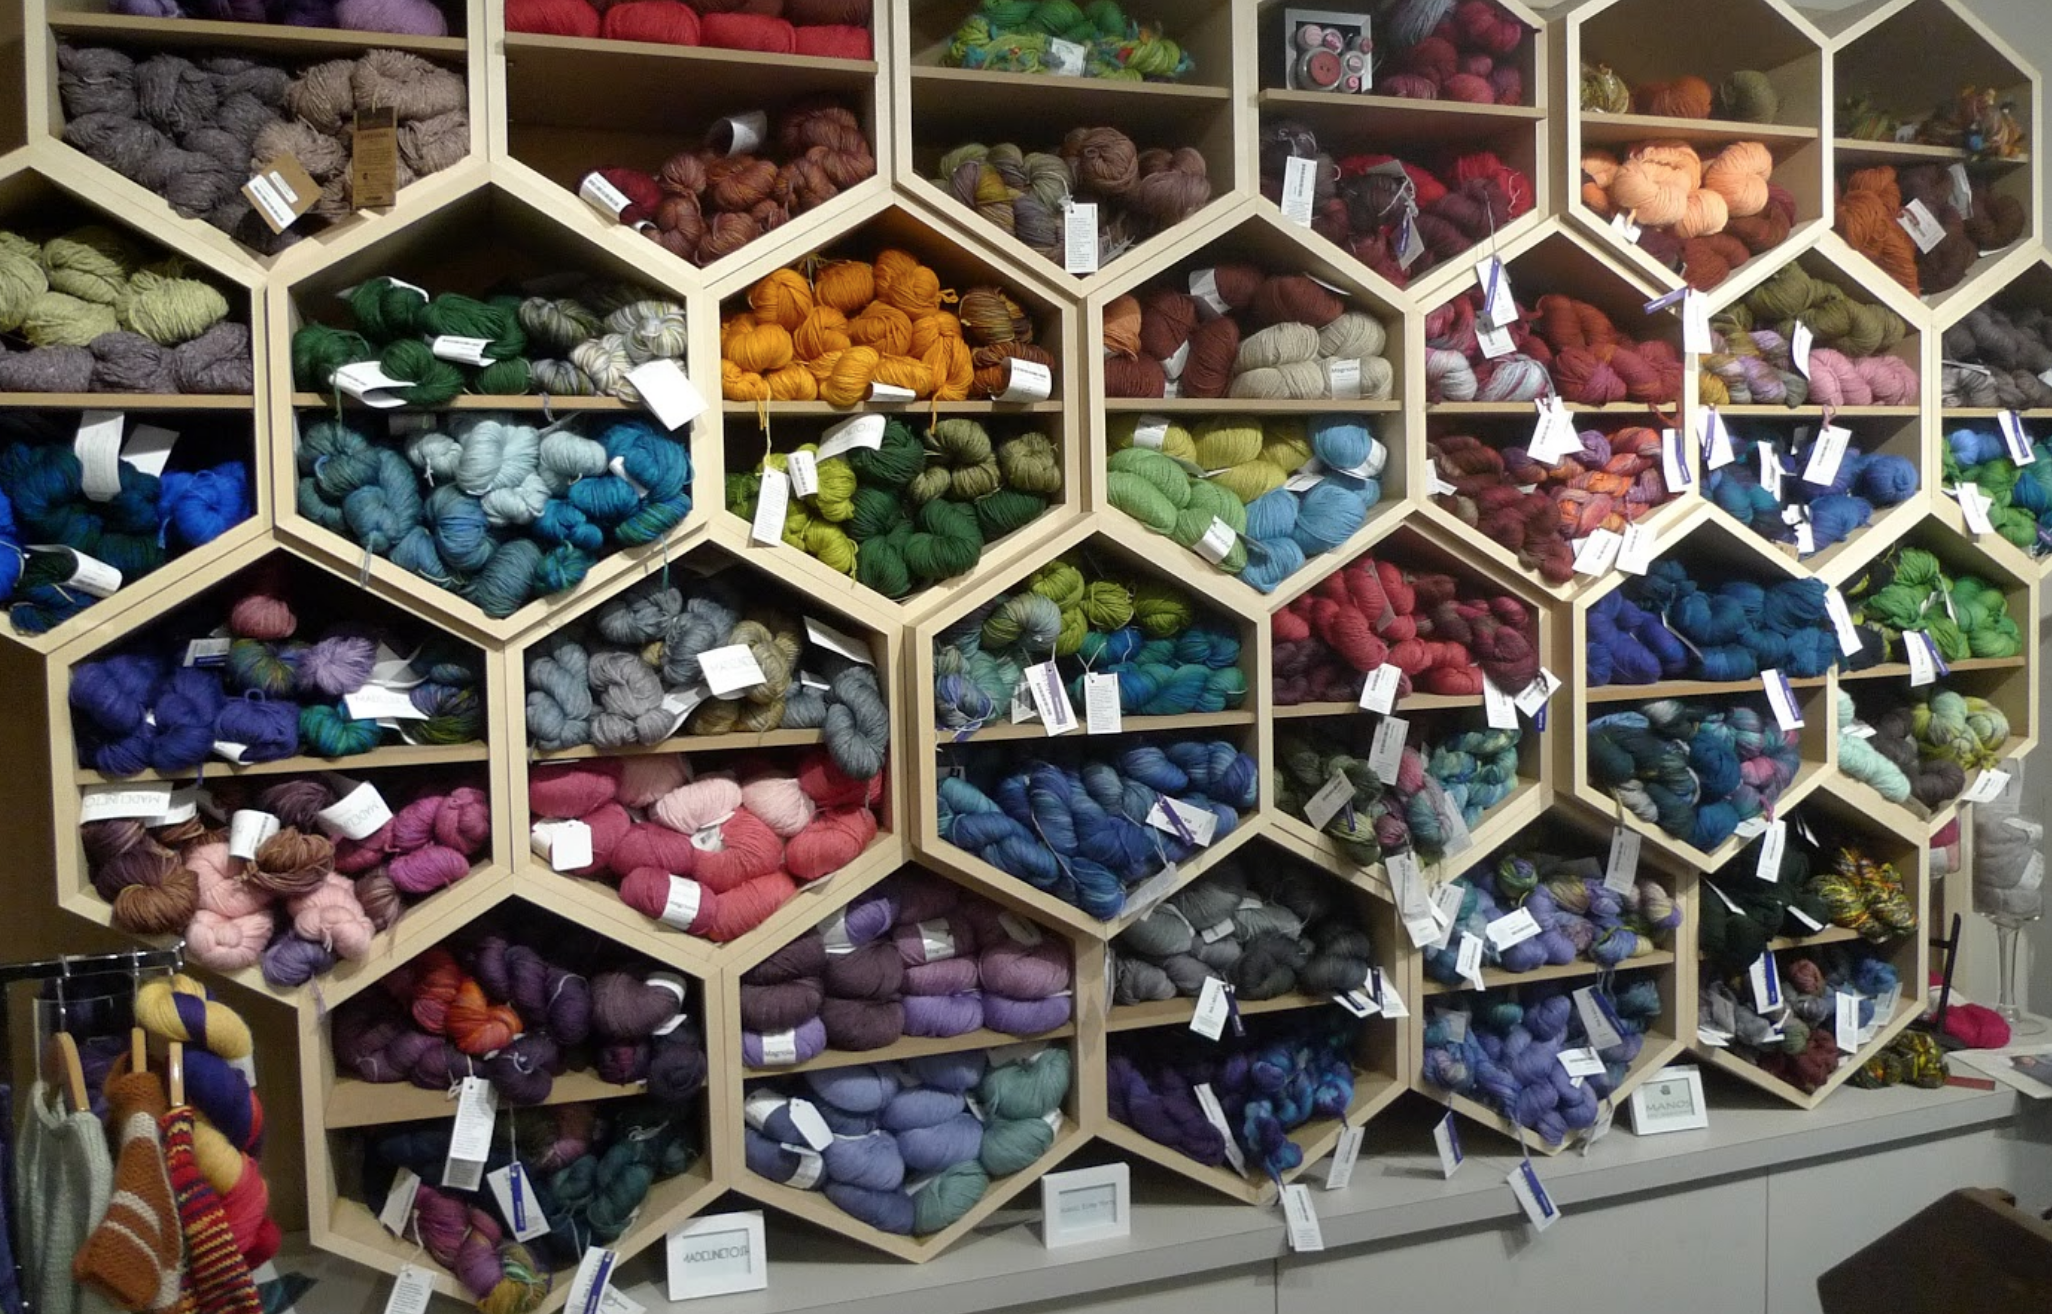 The Knitted Purl - Address: 80 South St, Oyster Bay, NY 11771, USAPhone: +1 516-558-7800http://knittedpurl.com/